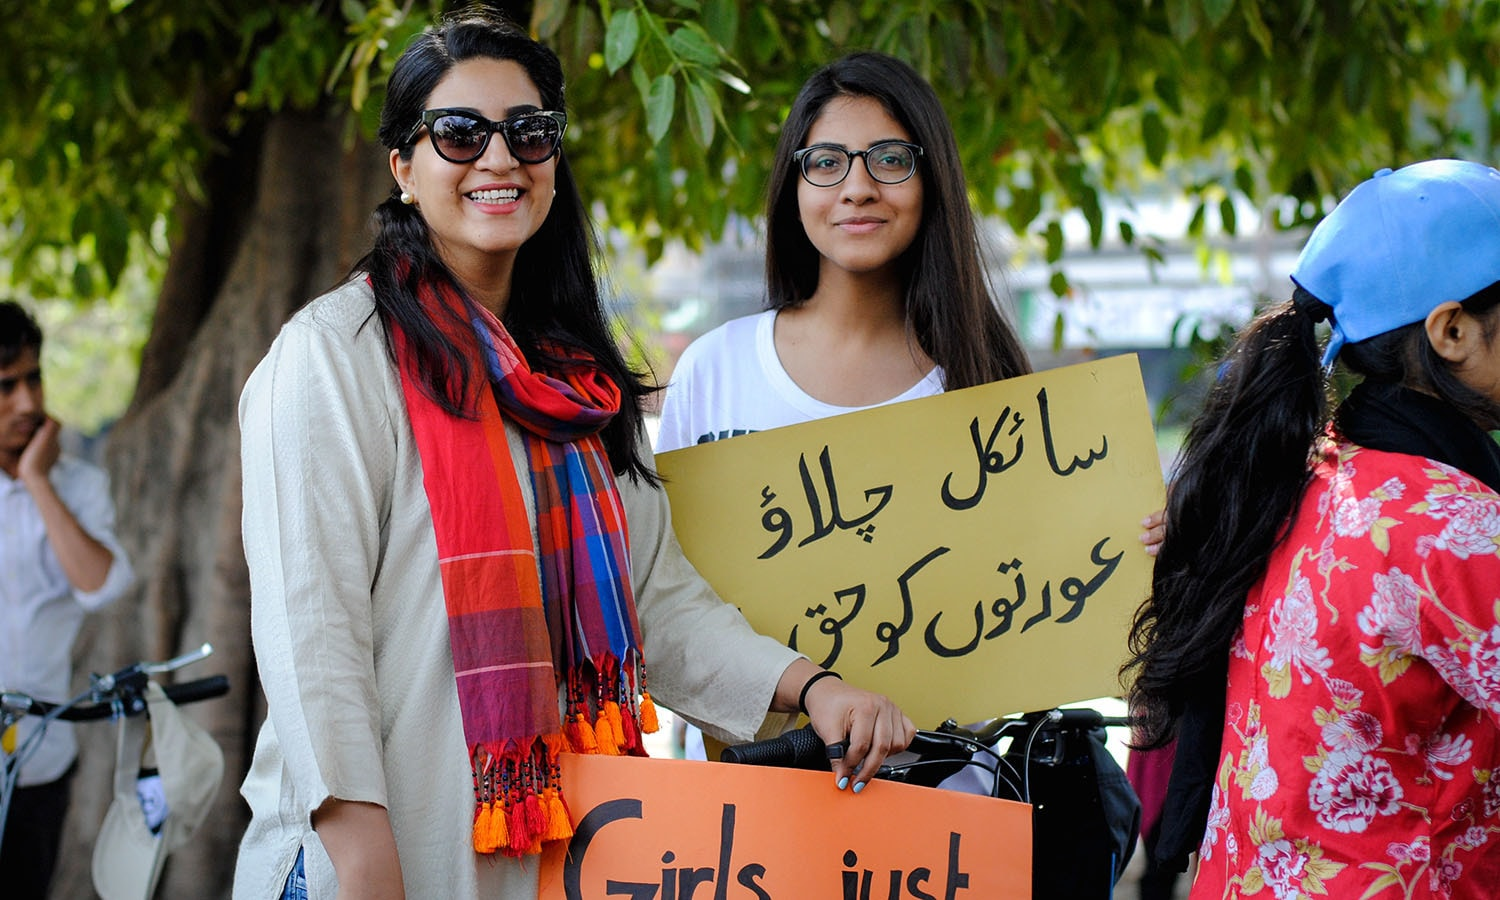 patriarchy in pakistan Patriarchy Écriture féminine feminist anthropology archaeology architecture art art criticism literary criticism film theory she will spend all on shopping and it is the only and utter right of her and this is sole definition of feminism in pakistan [unreliable source] movies.